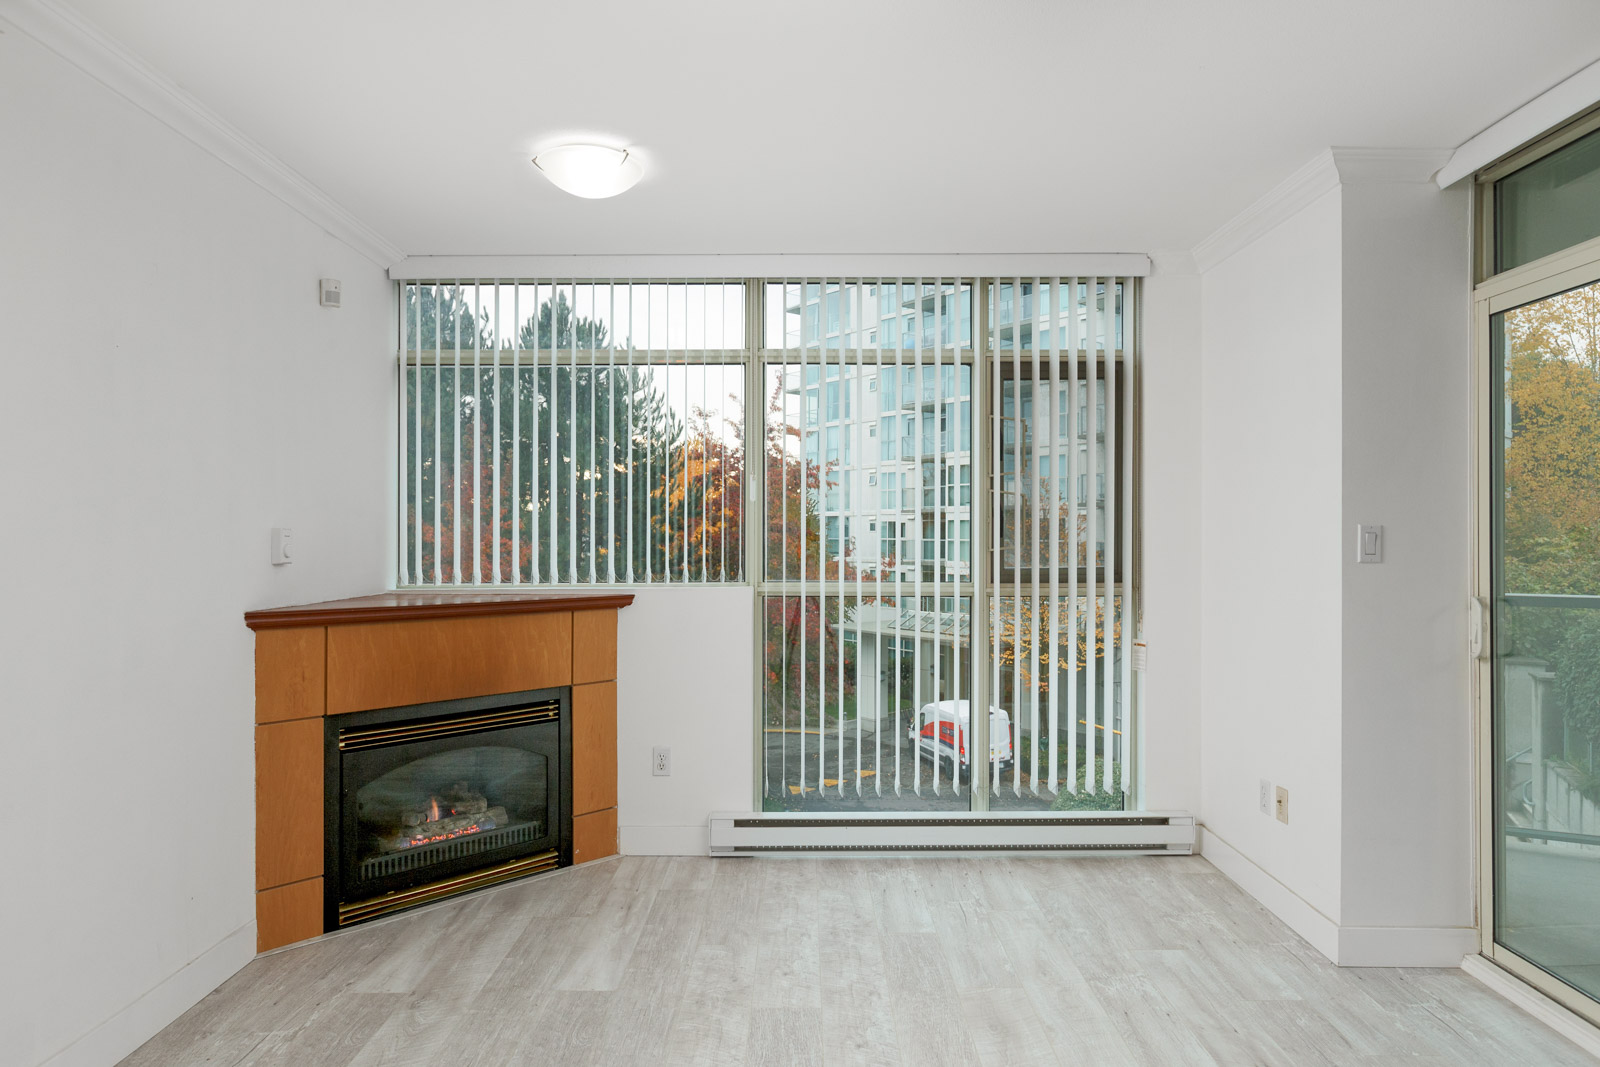 Unfurnished living room with fireplace and hardwood floors in River Dance building in River District East Vancouver rental condo property